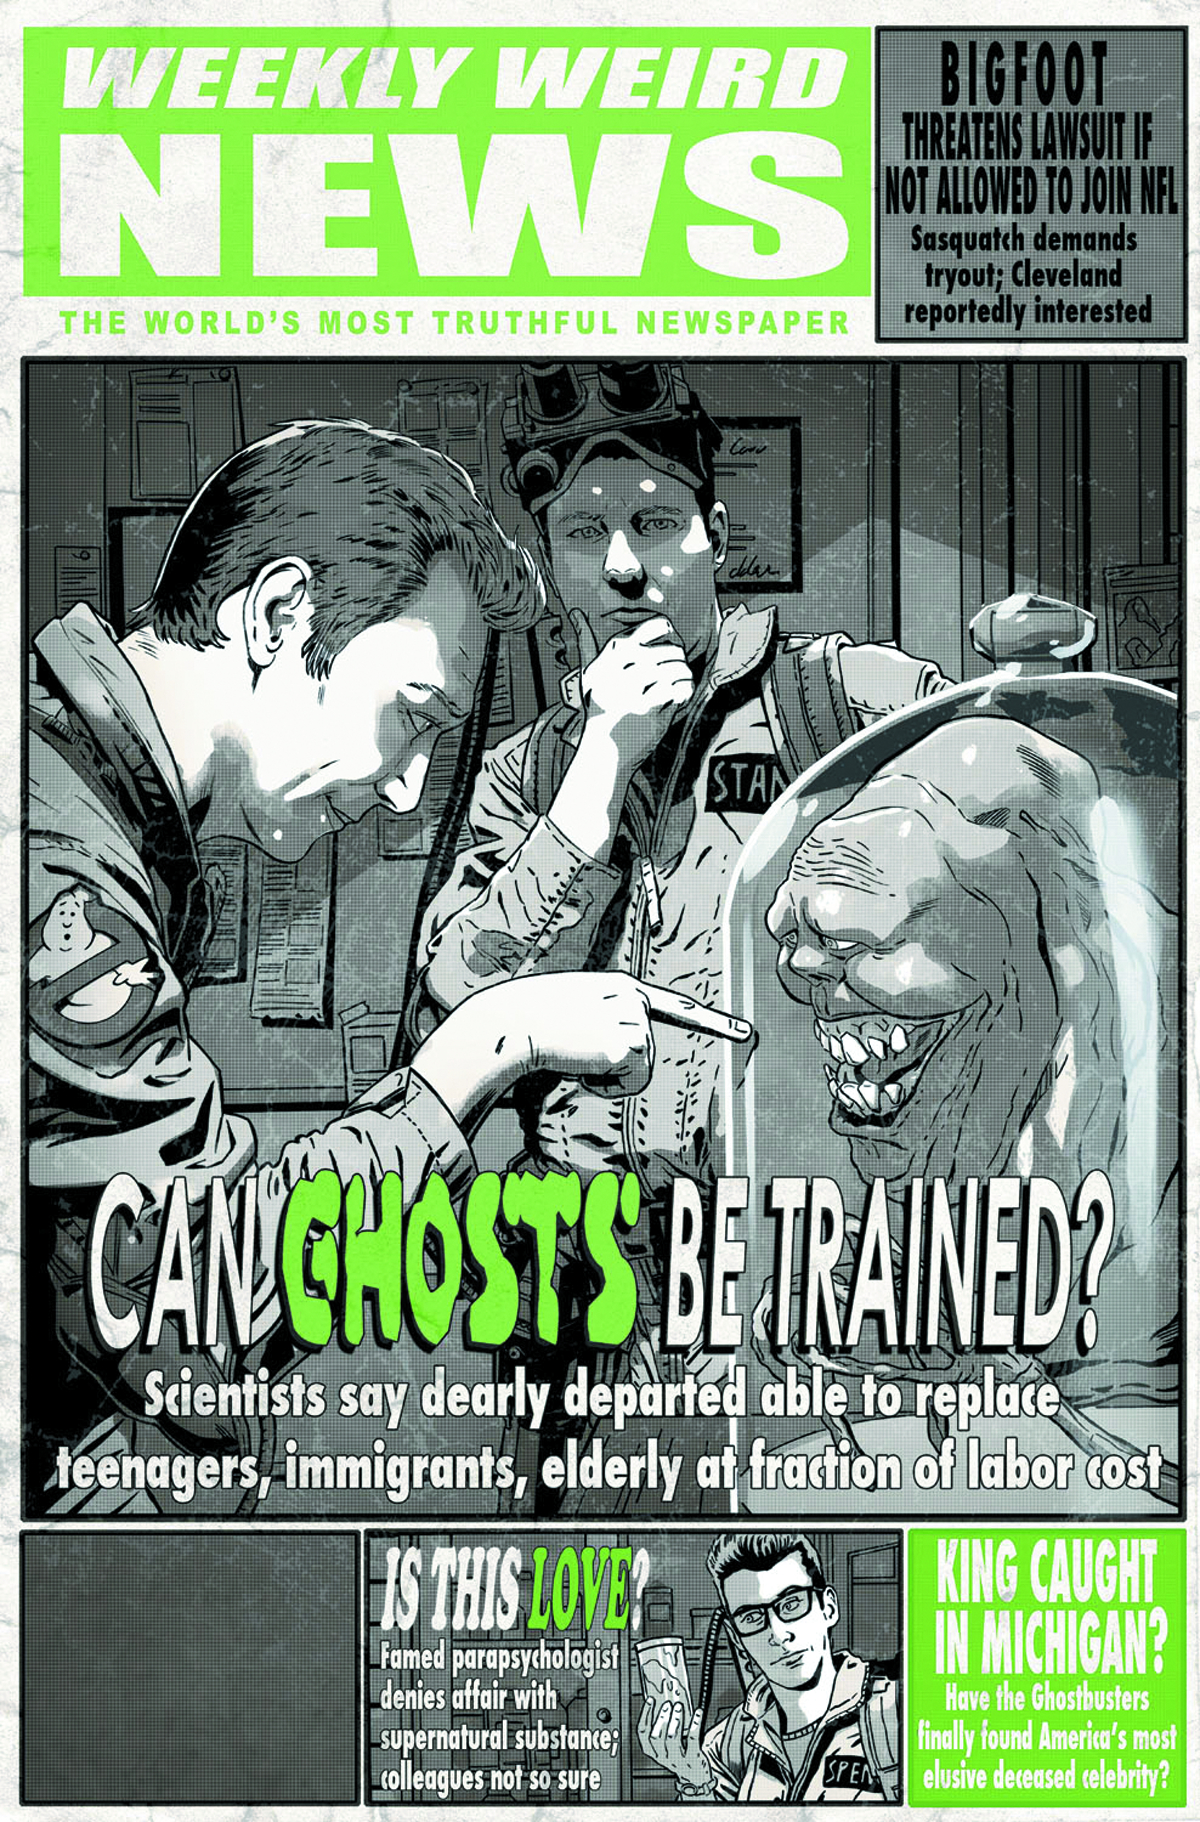 X-FILES CONSPIRACY GHOSTBUSTERS #1 FREE 25 COPY INCV